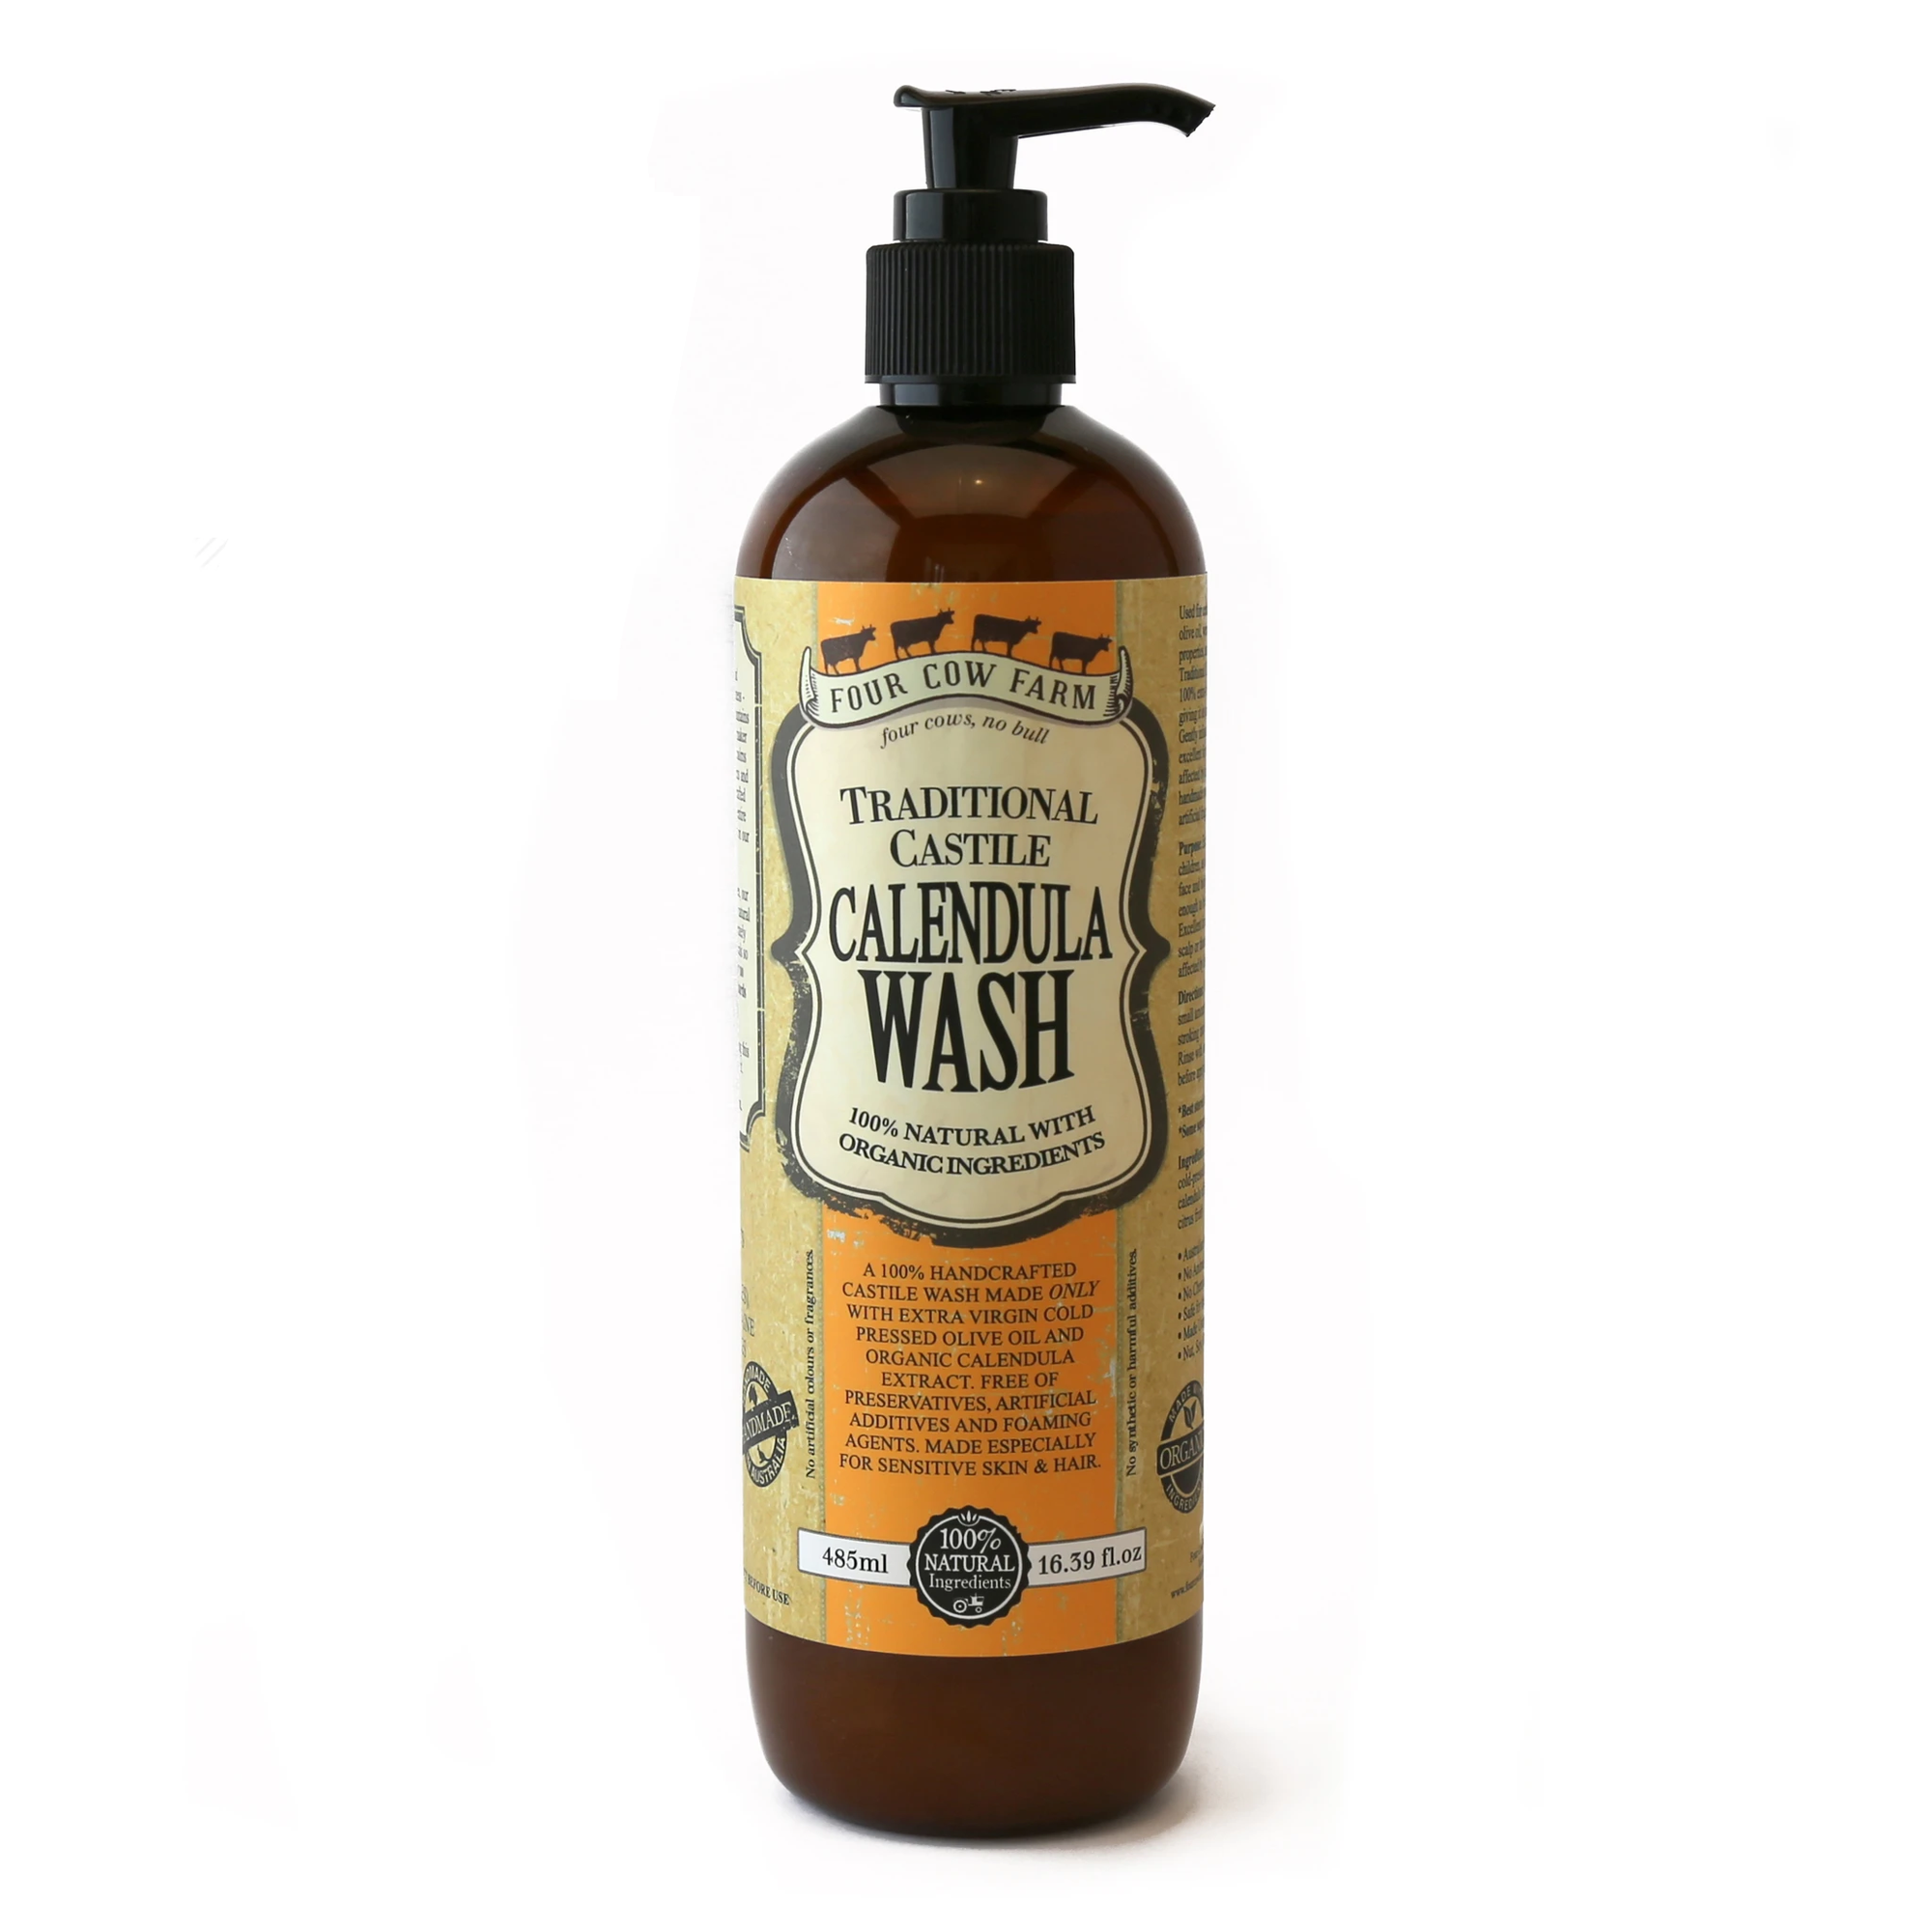 Four Cow Farm Traditional Castile Calendula Wash (485ml)